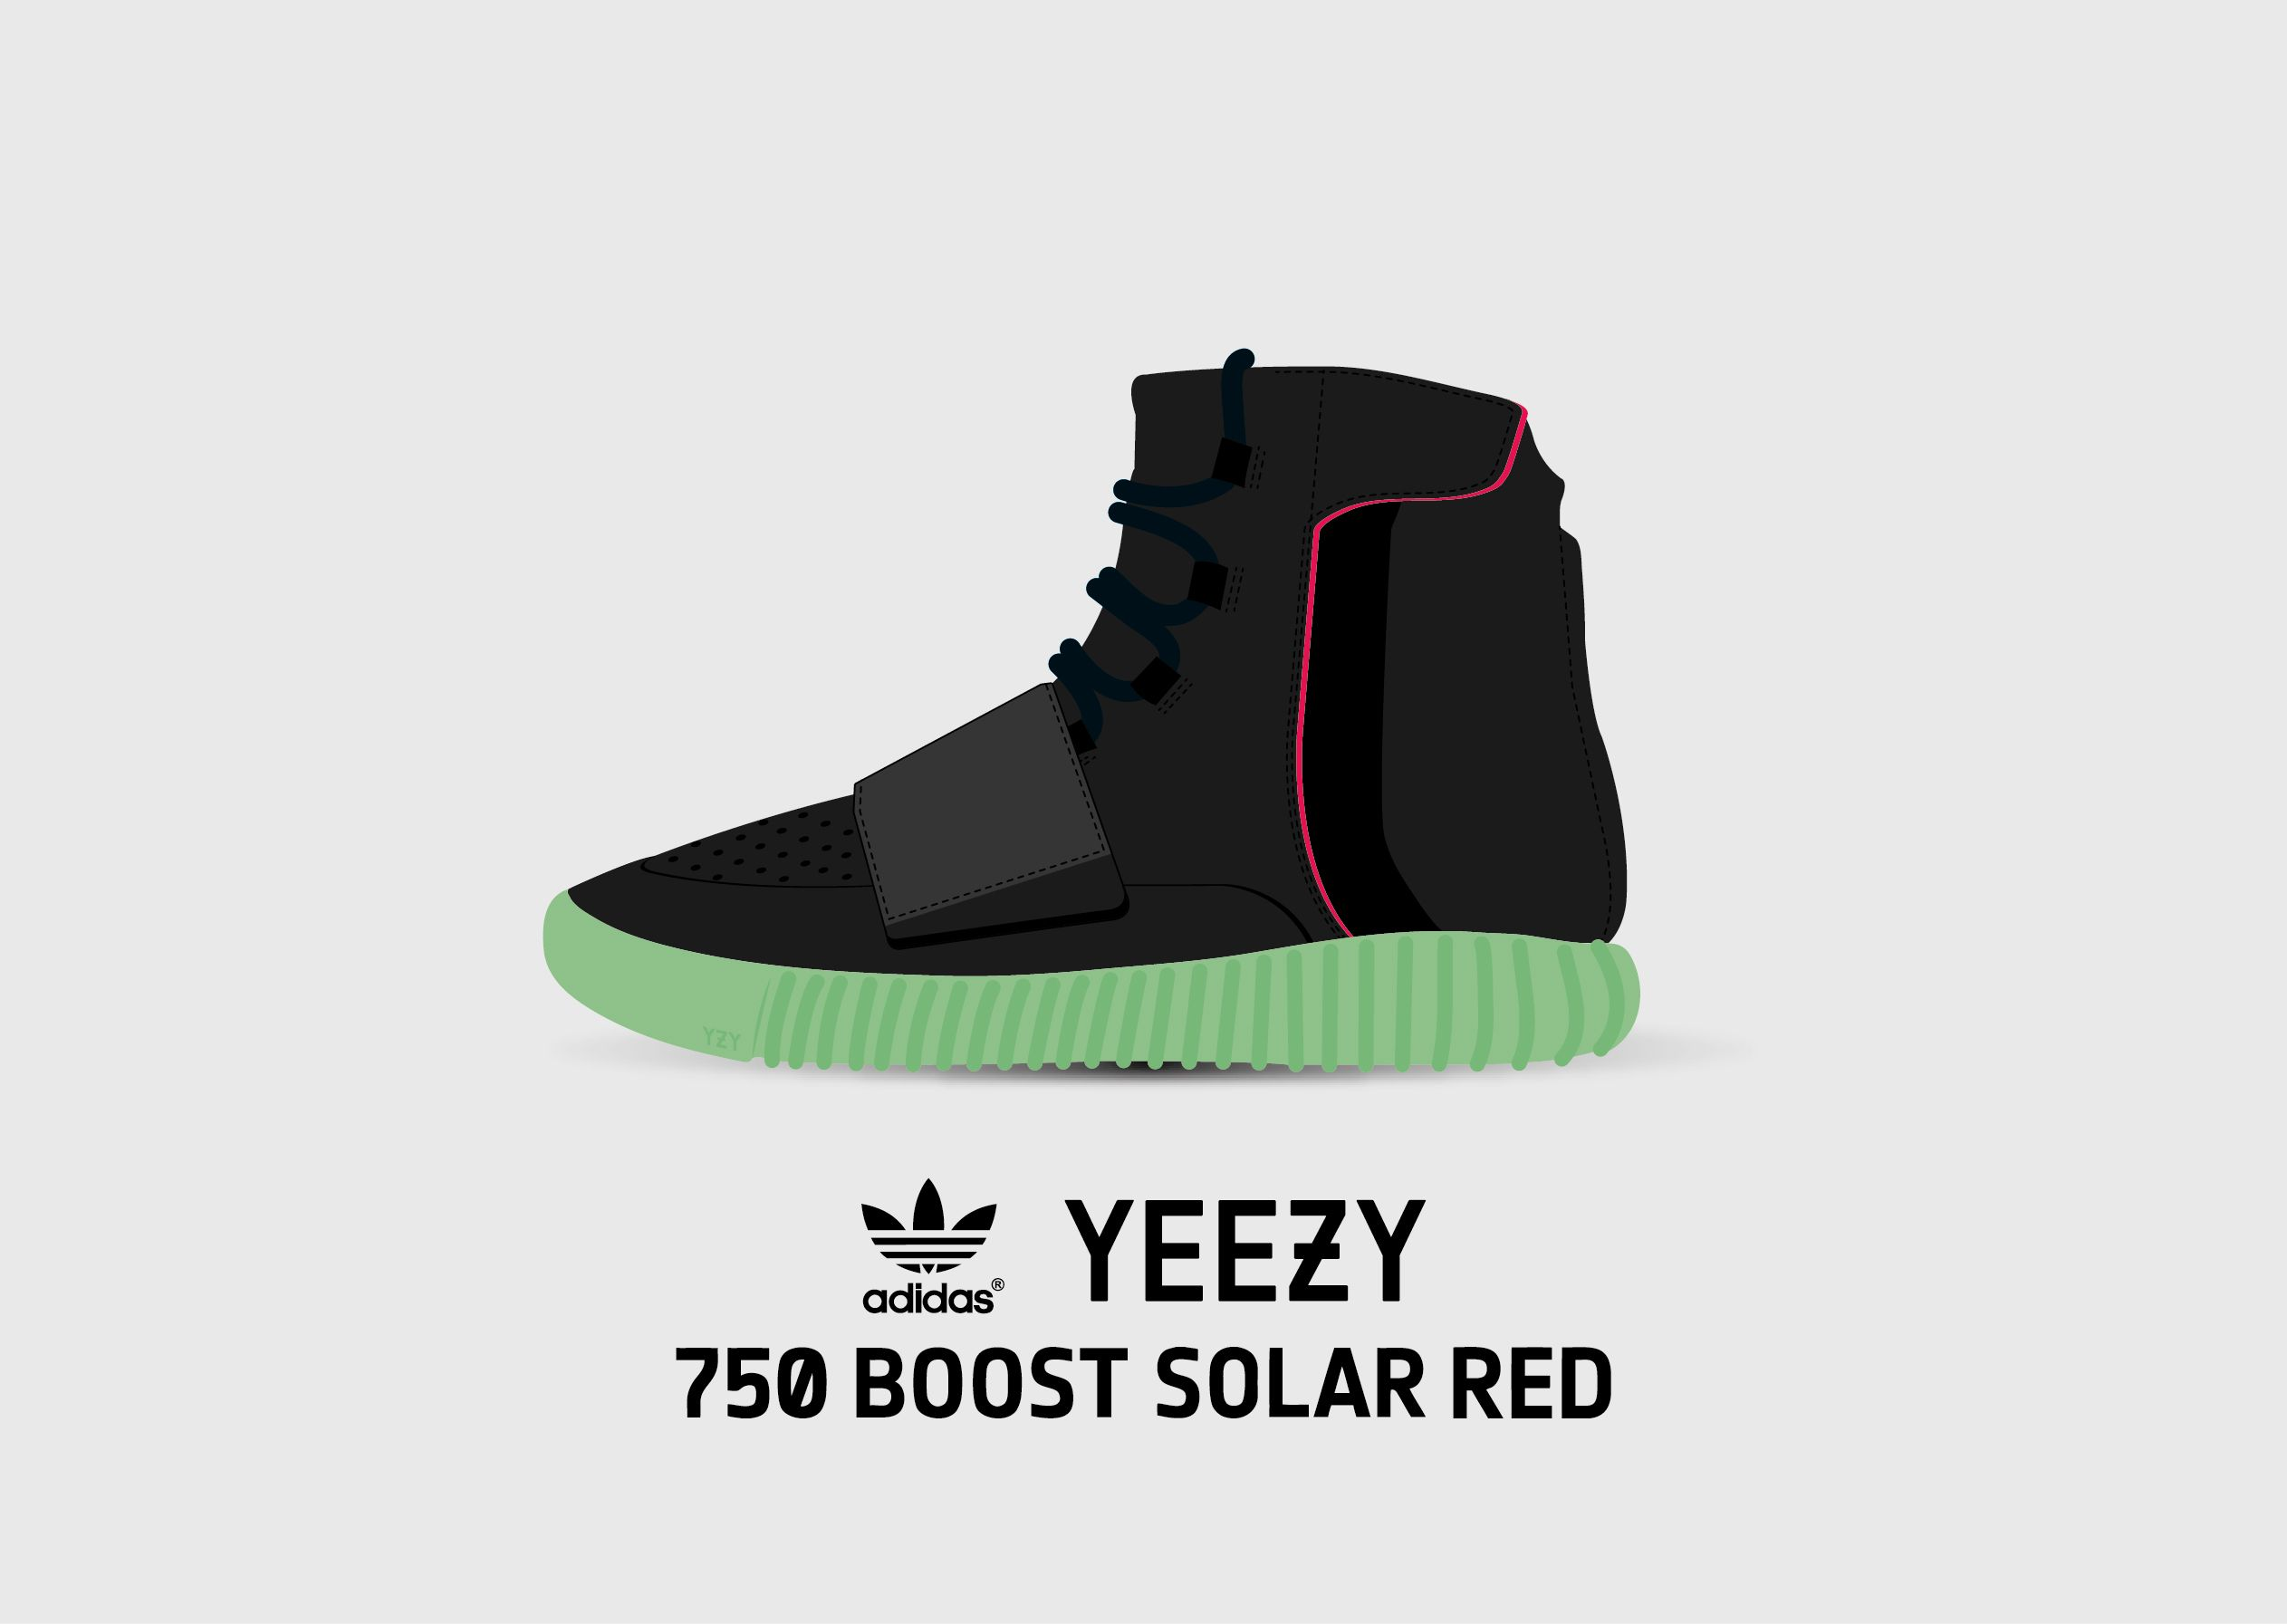 bf04e4c42 Yeezy 750 Boost SOLAR RED